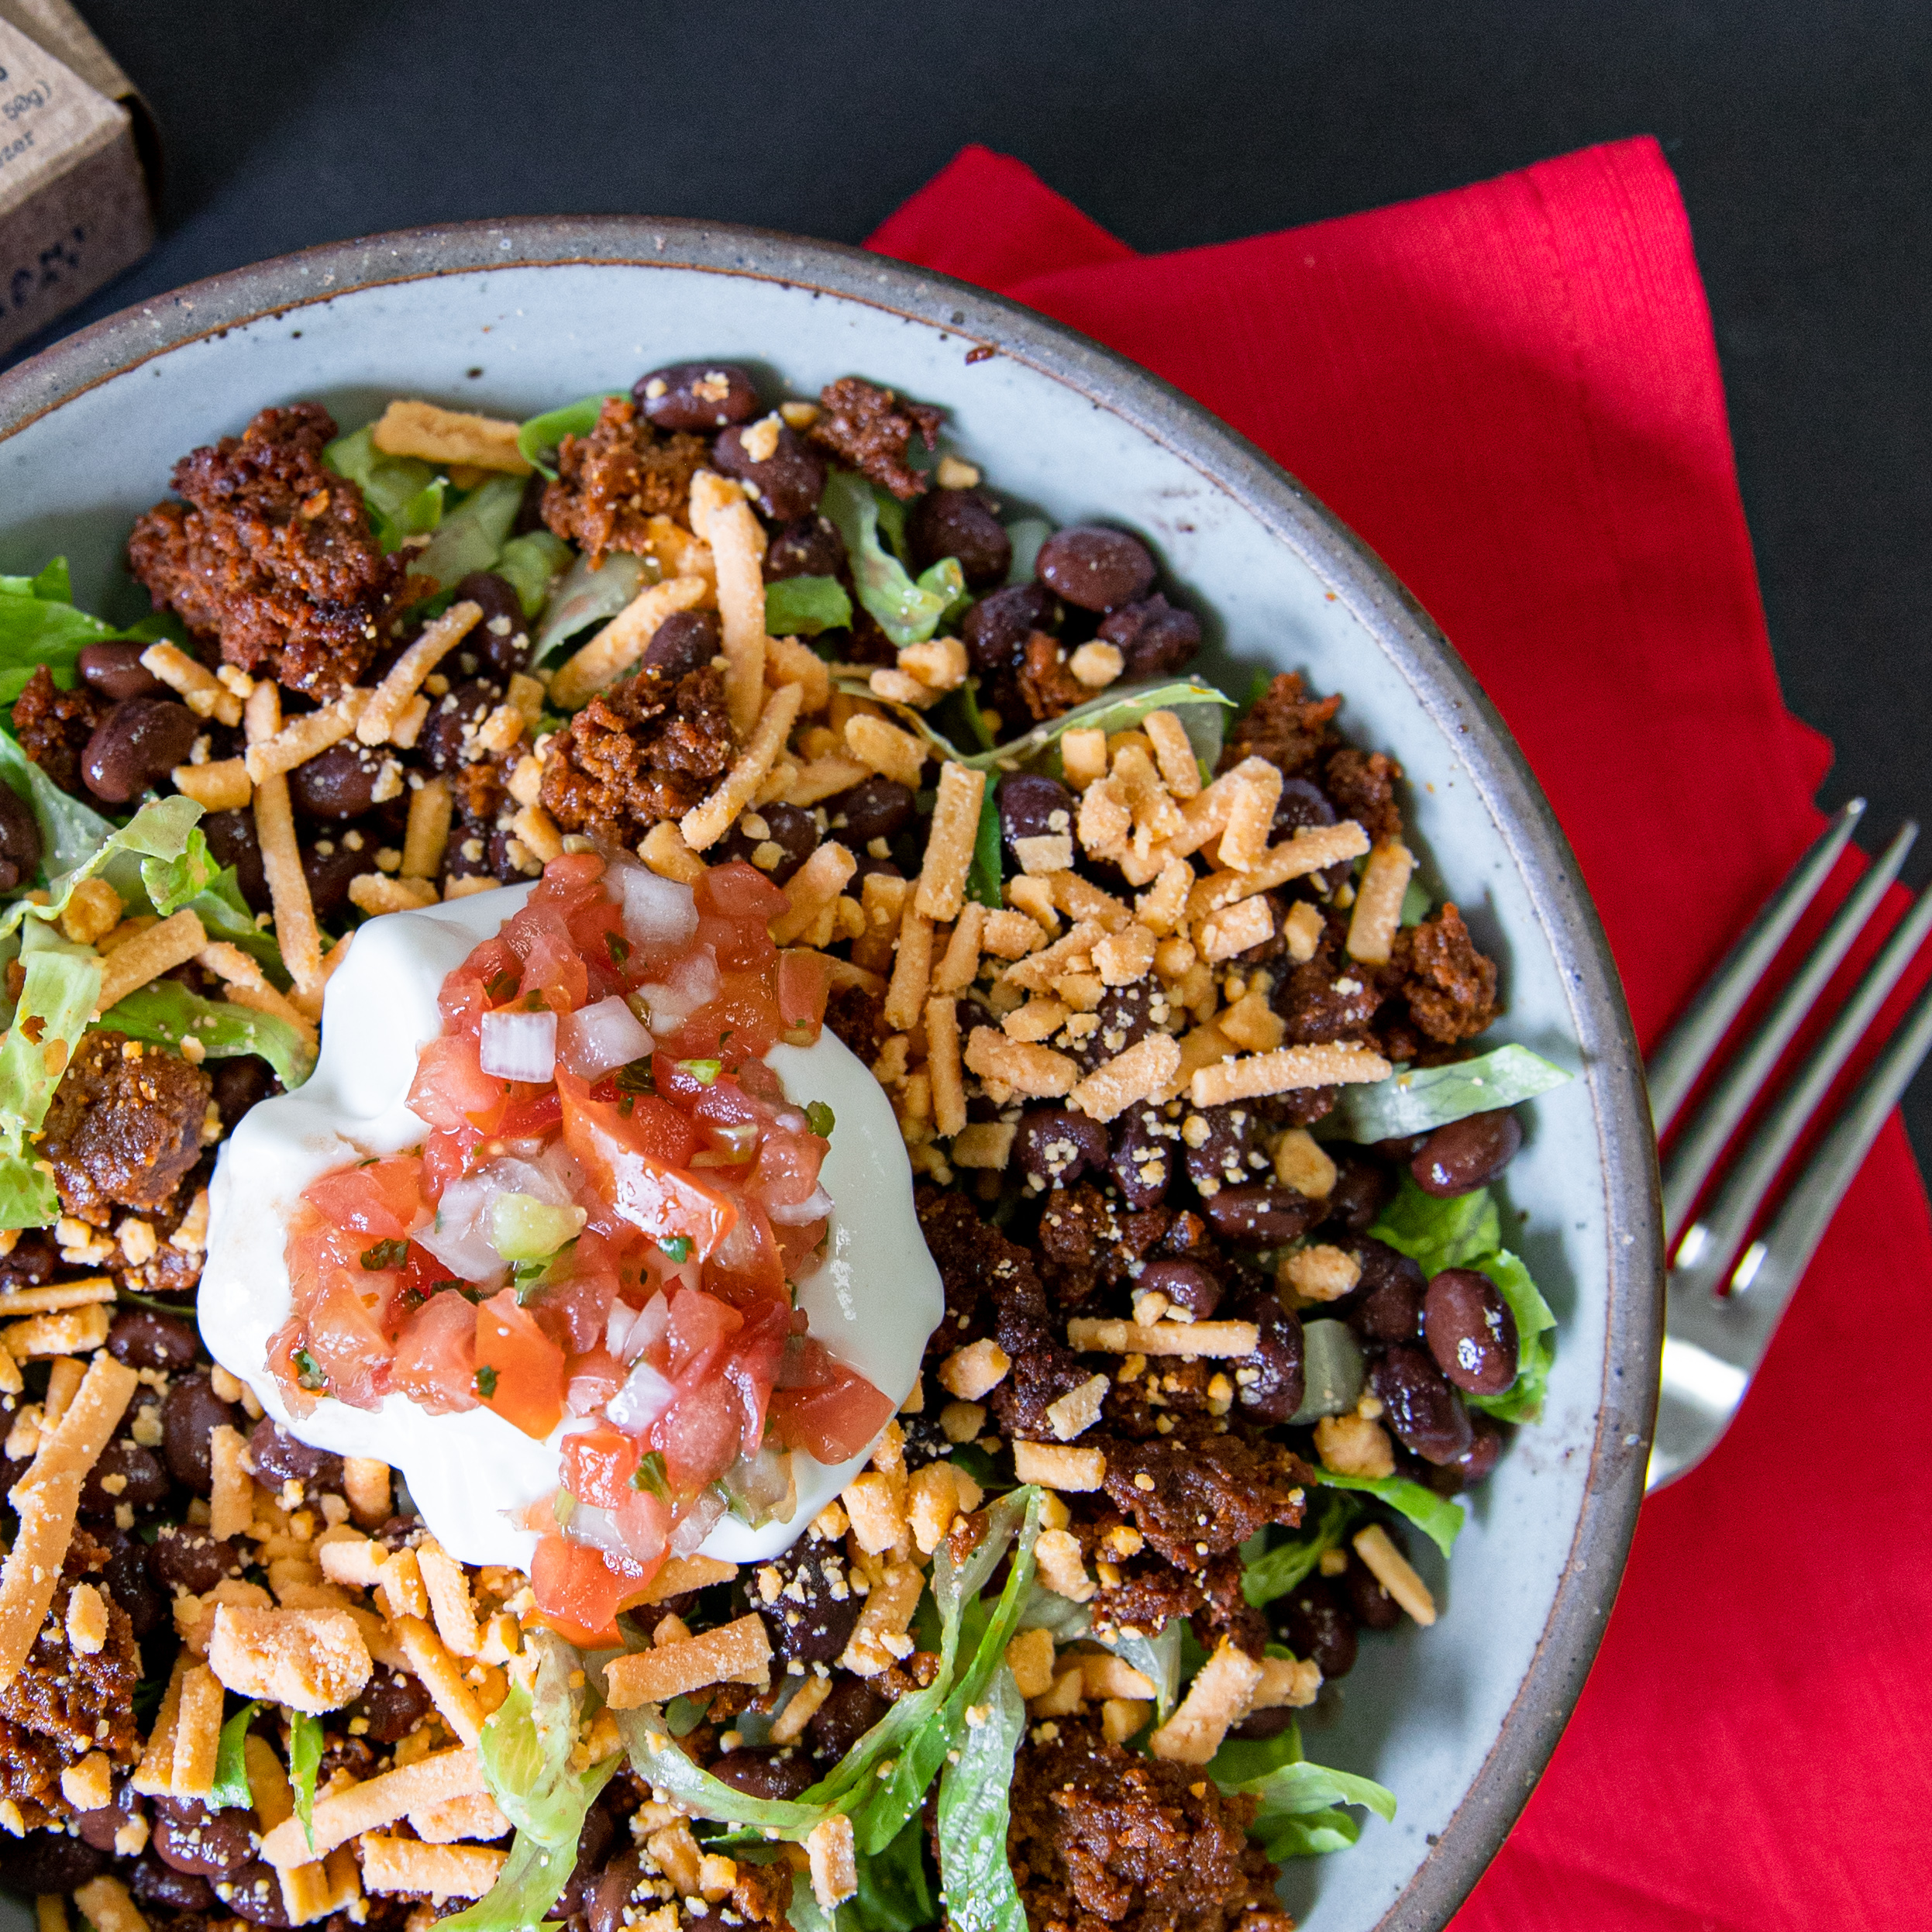 Vegan taco salad made with No Evil Foods El Capitan Chorizo Crumbles